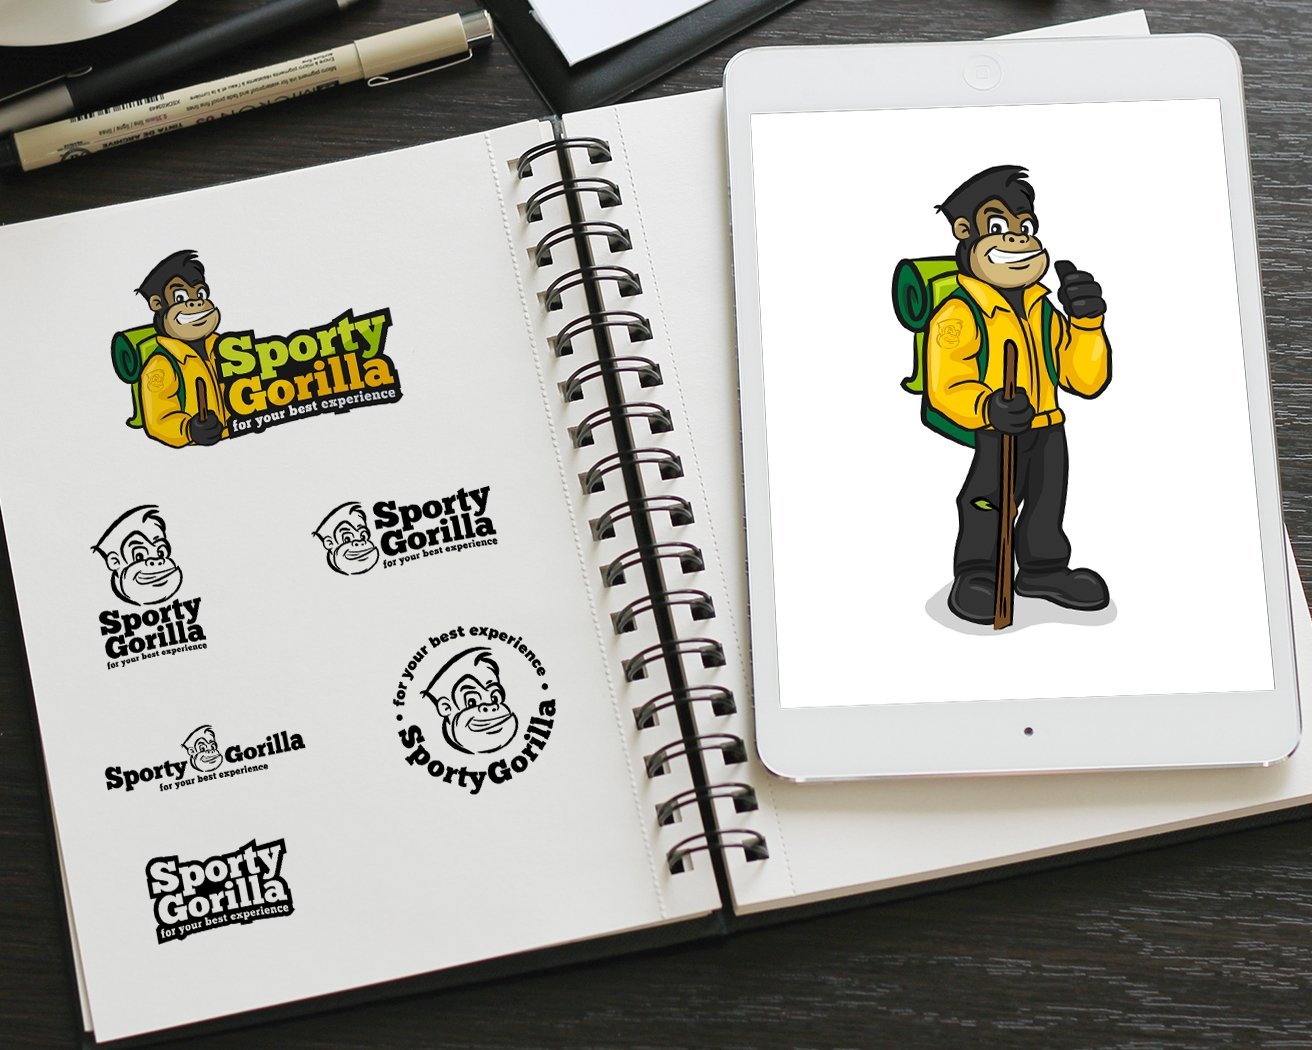 Logo and mascot design done for a hiking gear brand